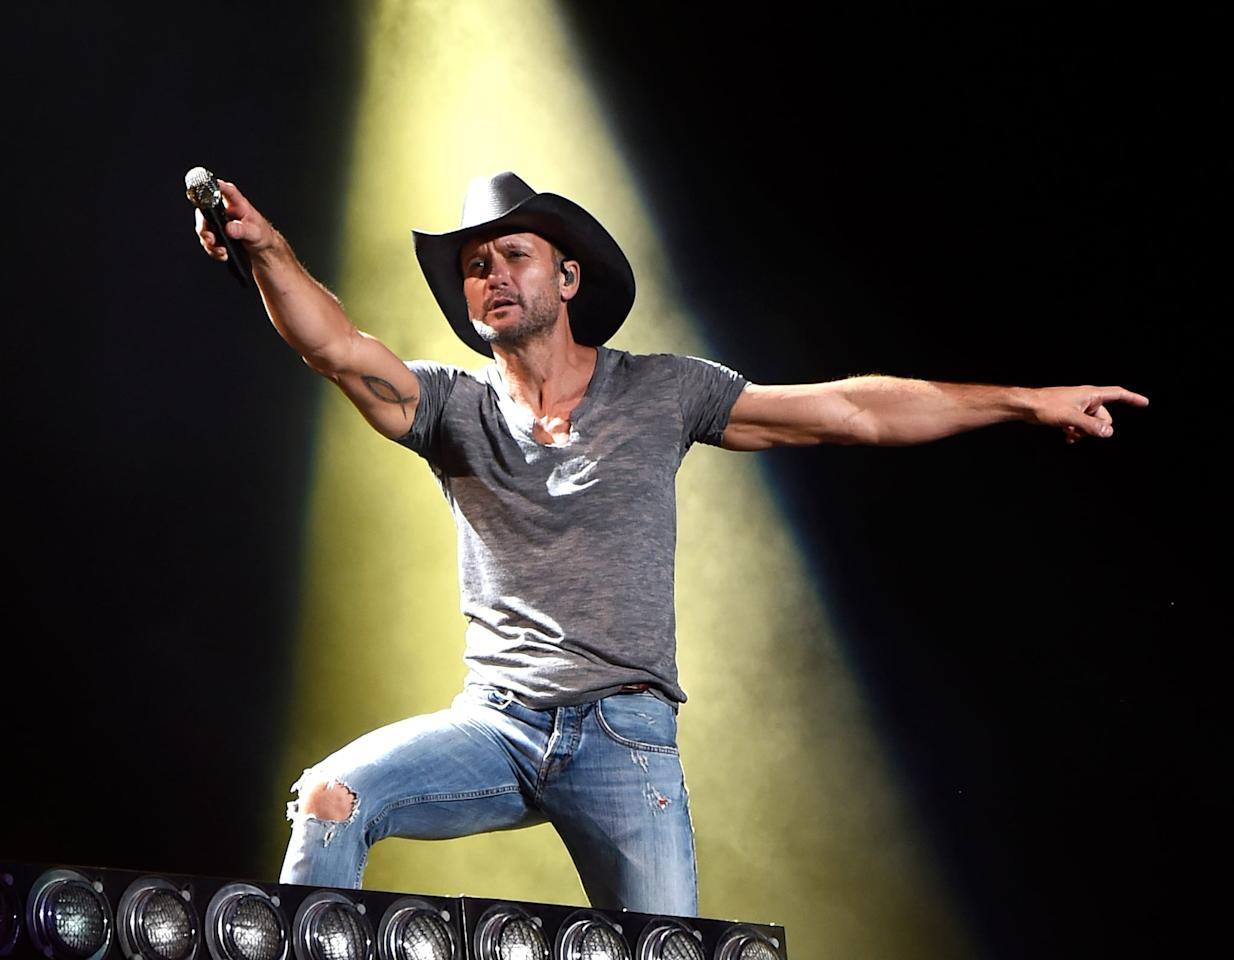 """<p><a href=""""http://www.popsugar.com/Tim-McGraw"""" class=""""ga-track"""" data-ga-category=""""Related"""" data-ga-label=""""http://www.popsugar.com/Tim-McGraw"""" data-ga-action=""""In-Line Links"""">Tim McGraw</a> recently released his book <strong>Grit &amp; Grace: Train the Mind, Train the Body, Own Your Life</strong>, but that doesn't seem to be the only project he has on his plate. Back in September 2019, McGraw confirmed that his new album is coming out in 2020. """"This project is <a href=""""http://tasteofcountry.com/tim-mcgraws-new-song-album-interview/"""" target=""""_blank"""" class=""""ga-track"""" data-ga-category=""""Related"""" data-ga-label=""""http://tasteofcountry.com/tim-mcgraws-new-song-album-interview/"""" data-ga-action=""""In-Line Links"""">really a tapestry of life</a>, and I can't wait for everybody to hear it,"""" the singer told <strong>Taste of Country</strong>. </p> <p><strong>Release date</strong>: TBA</p>"""